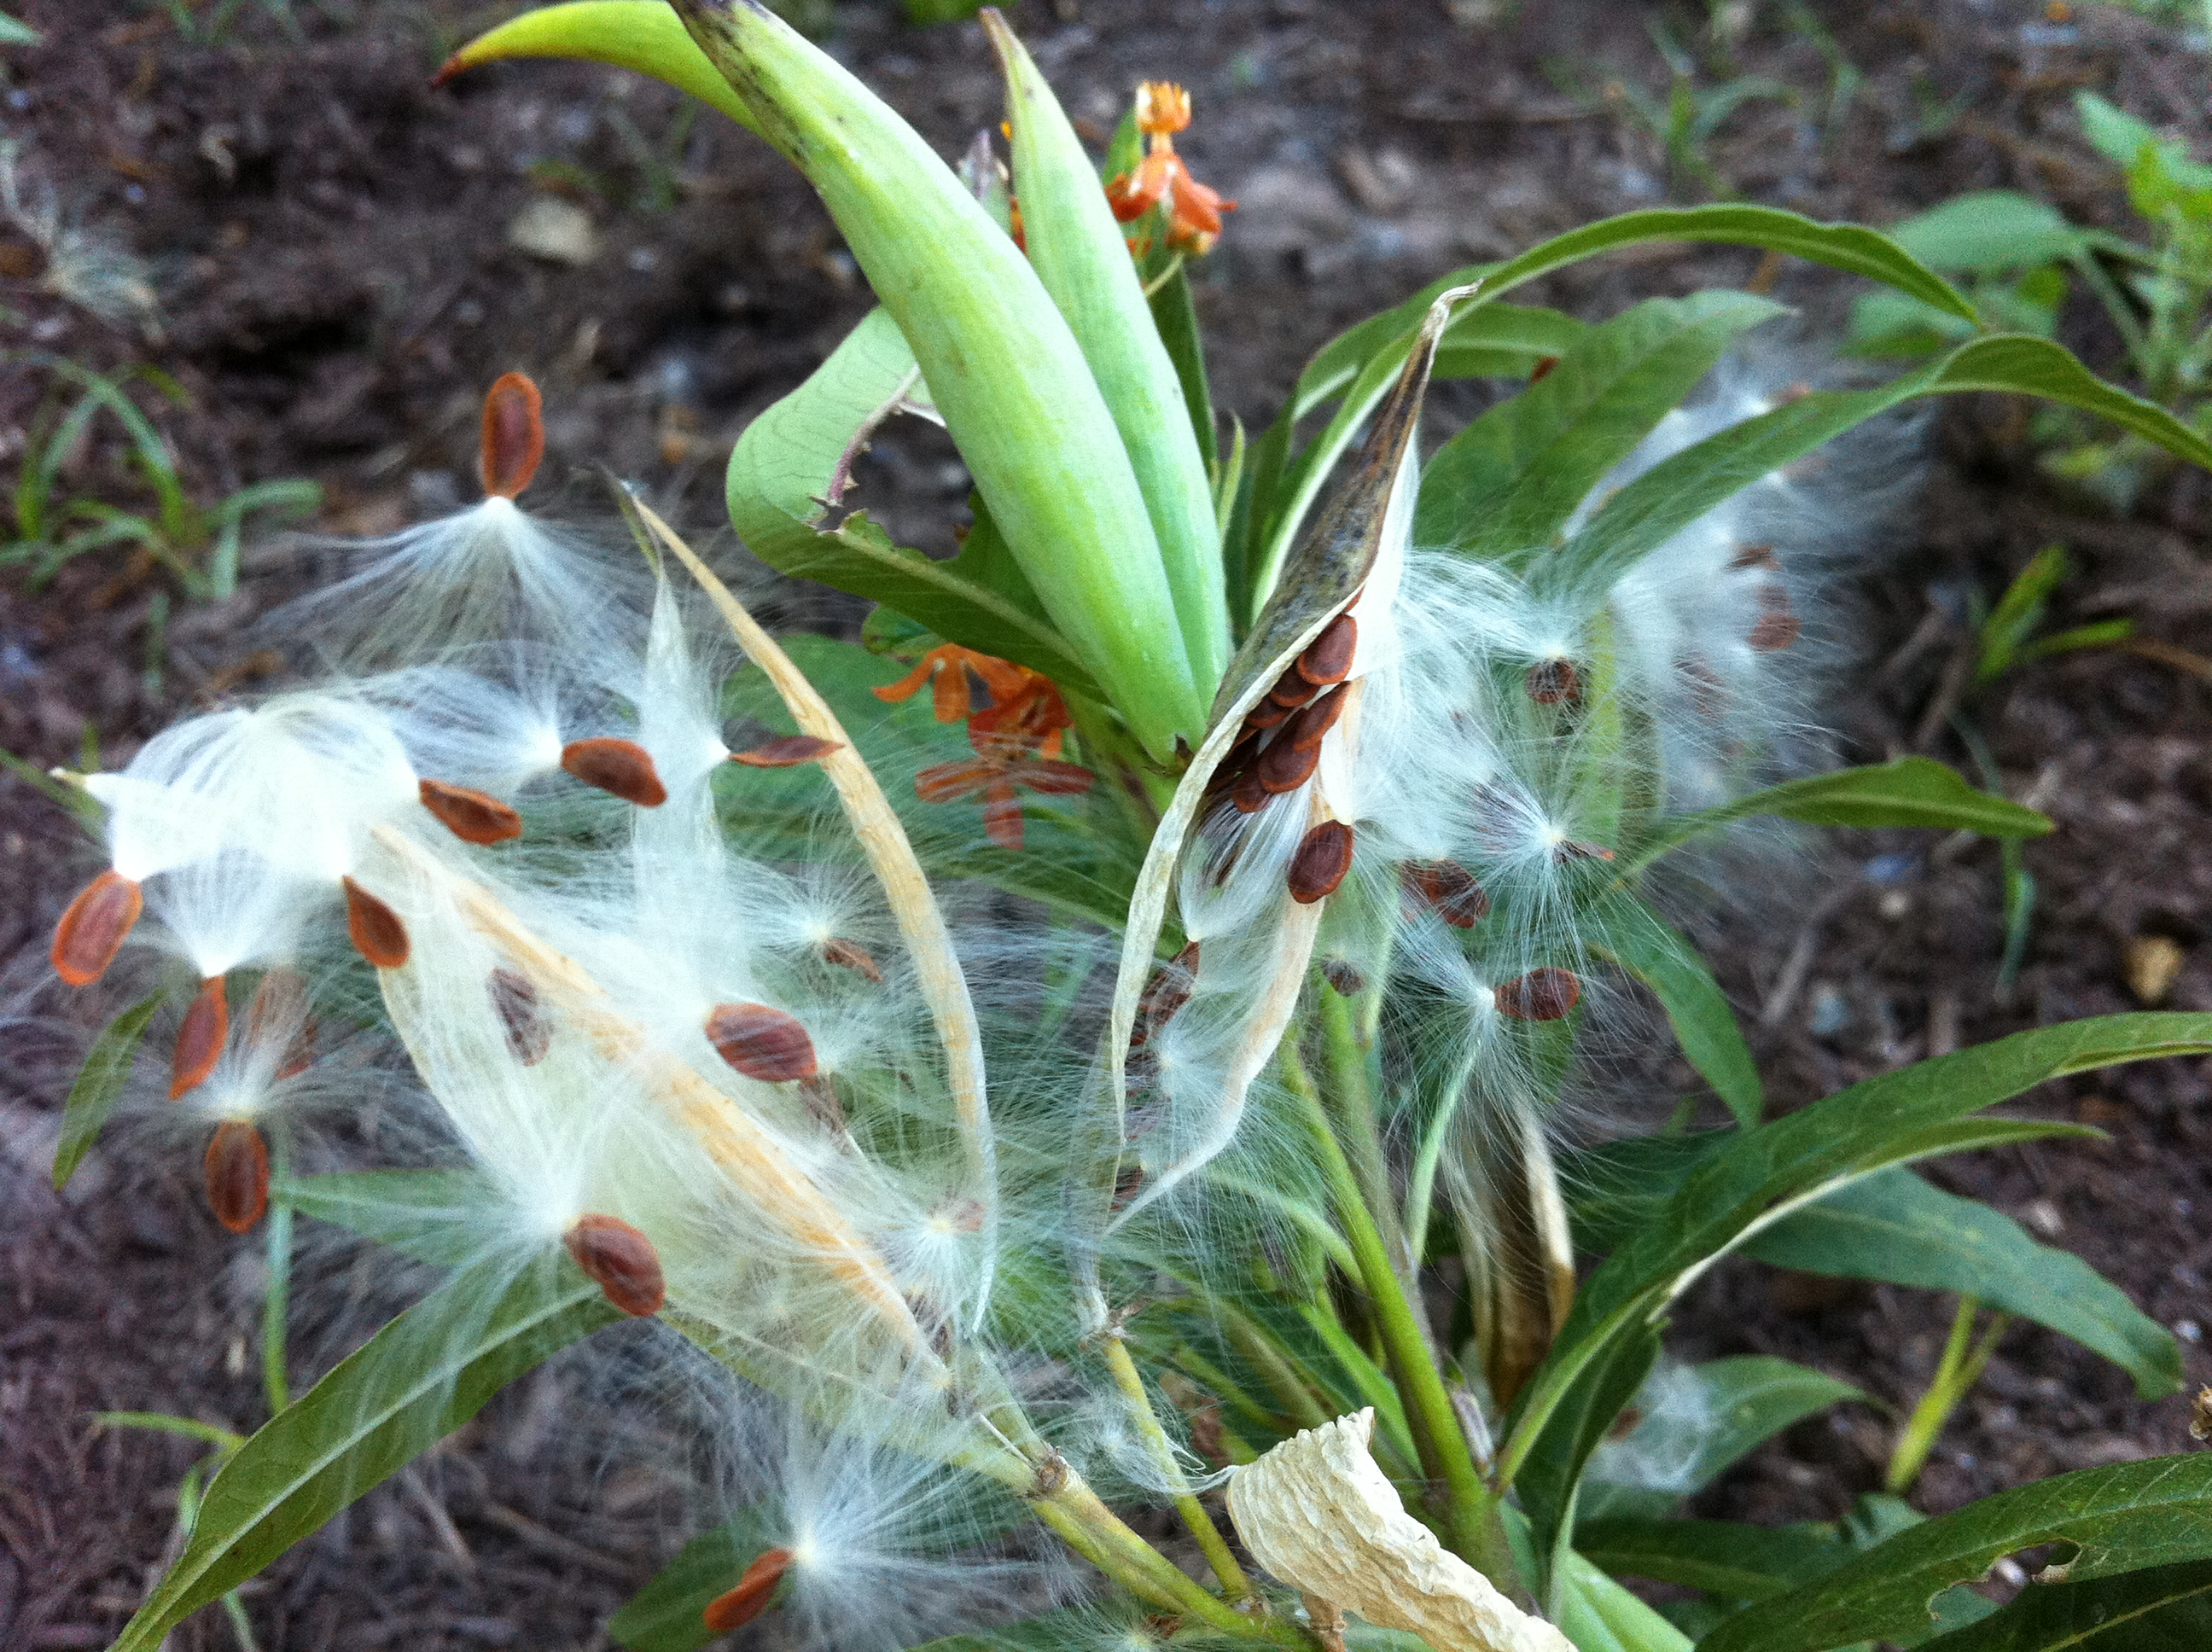 Tropical milkweed seedpods and fluff